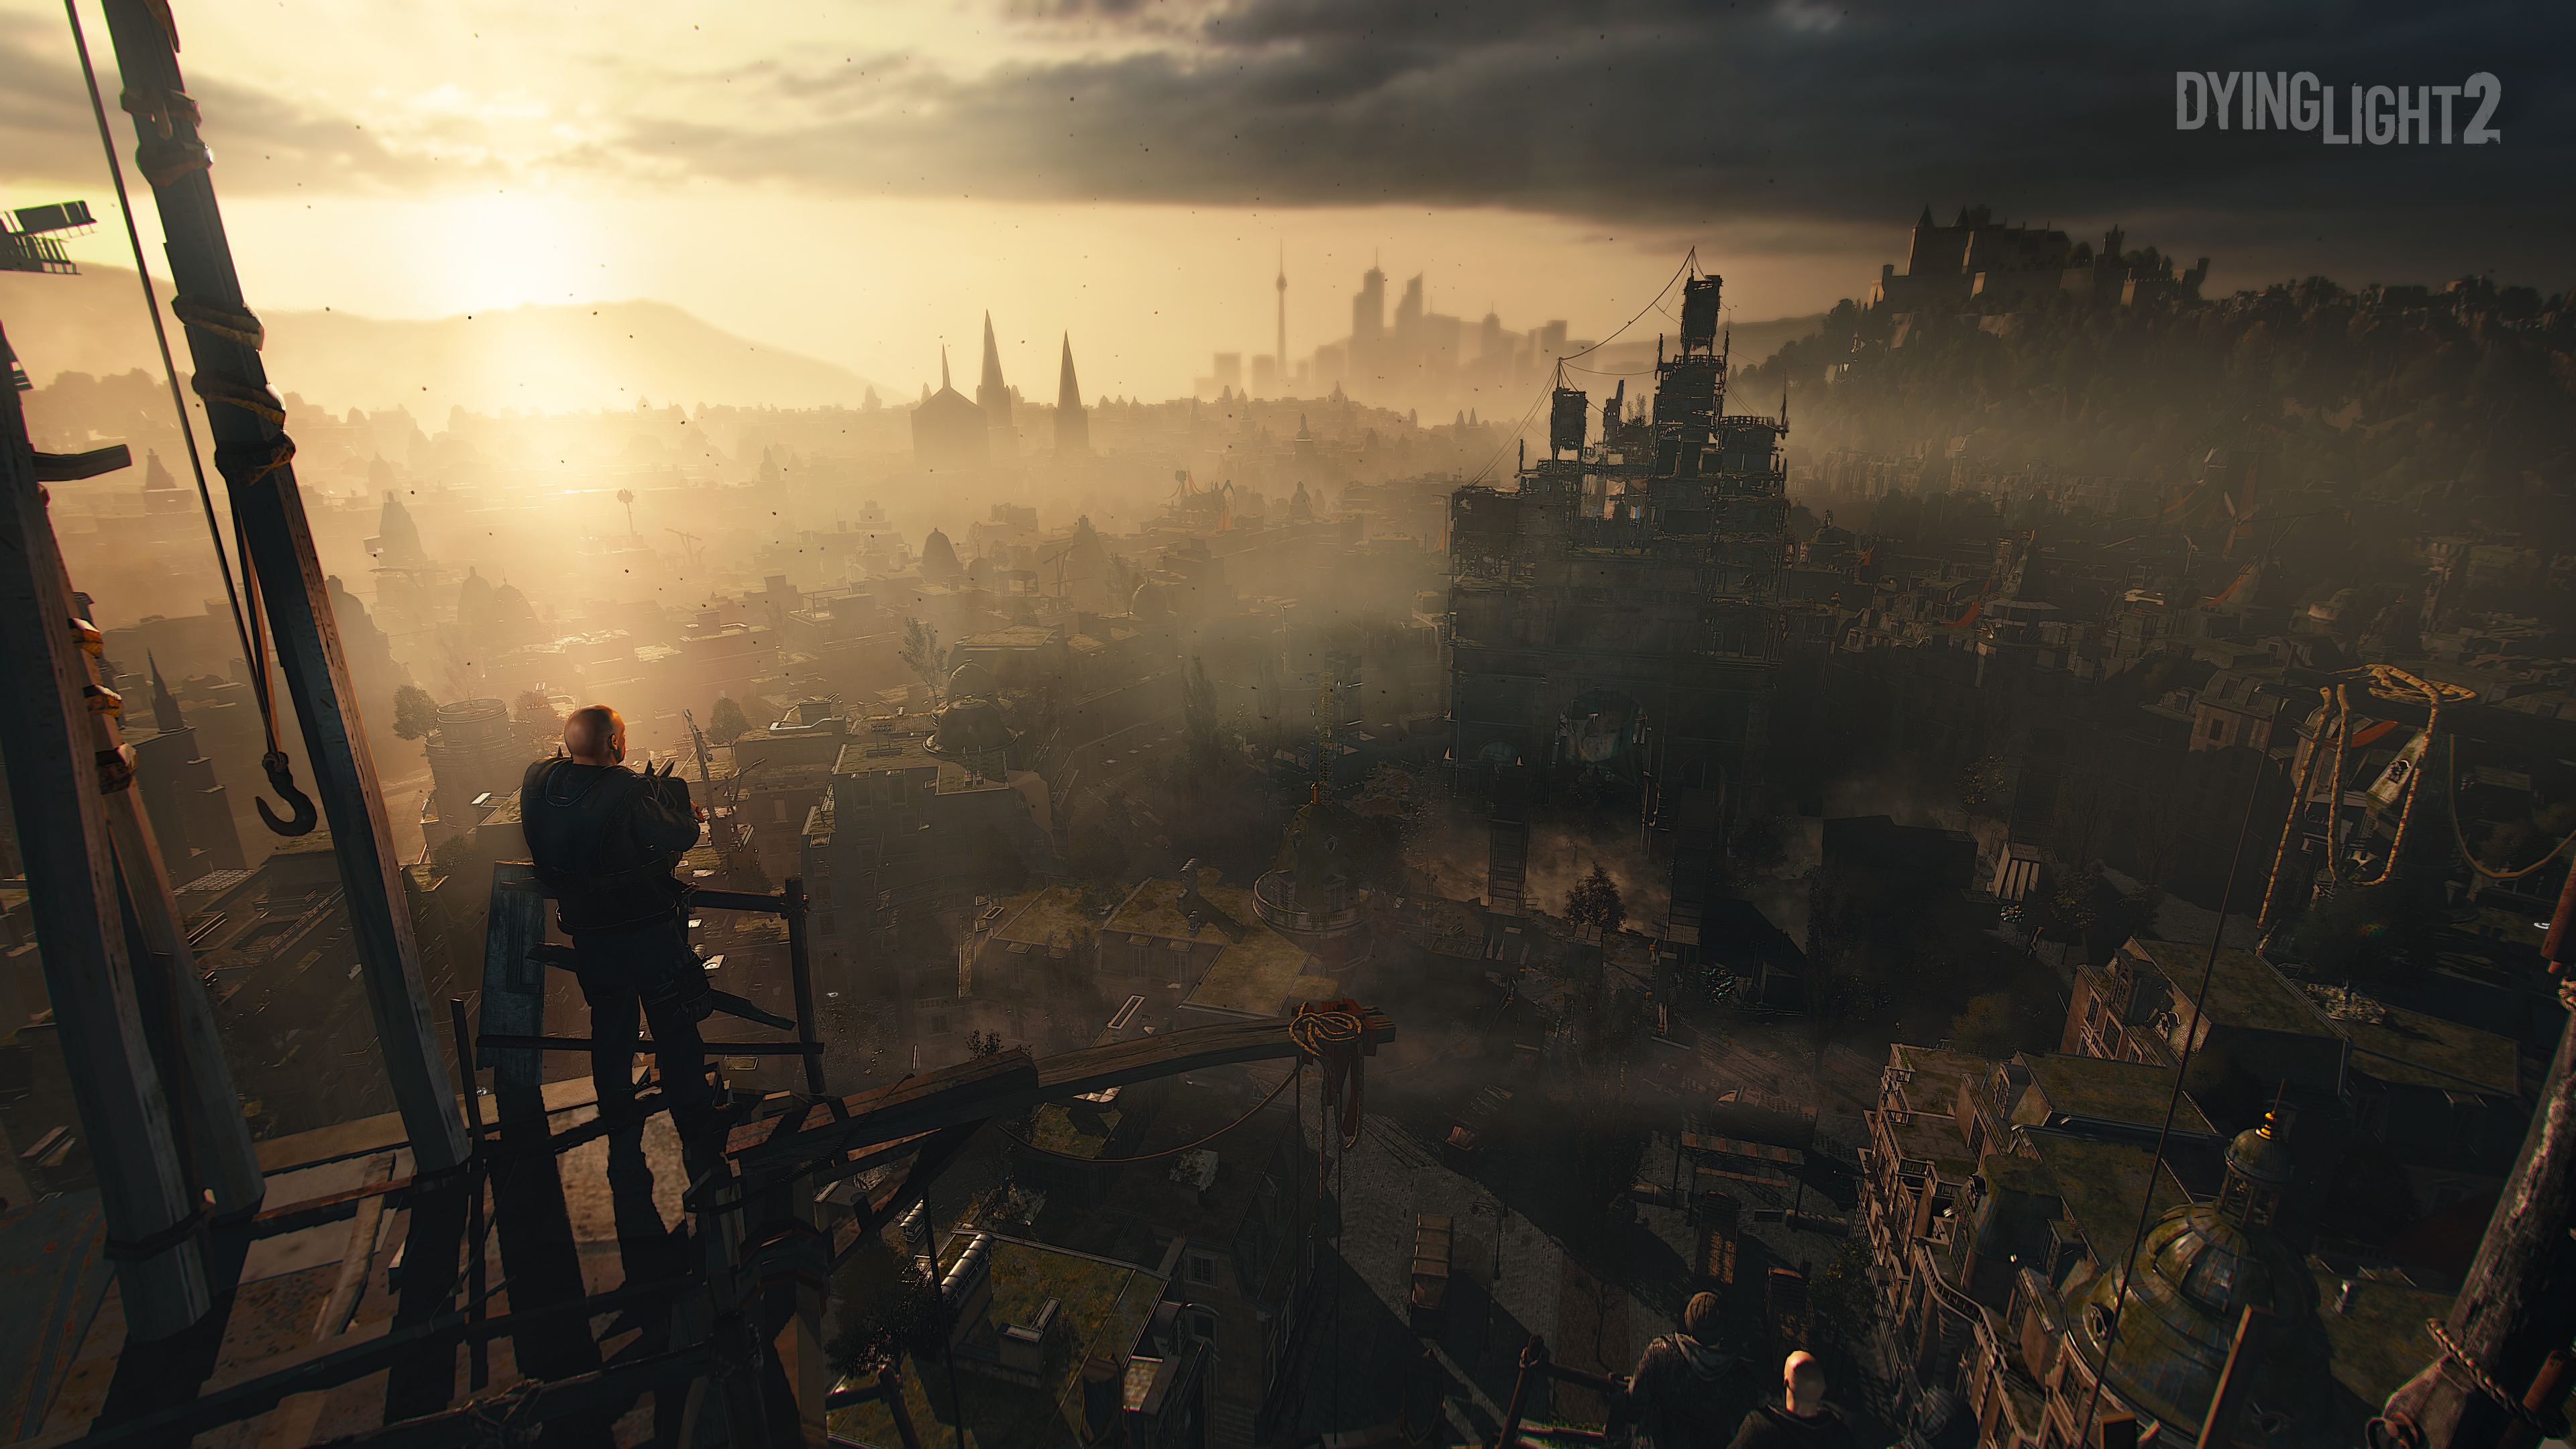 Dying Light 2 - A view from the rooftops down on sunset in the city.